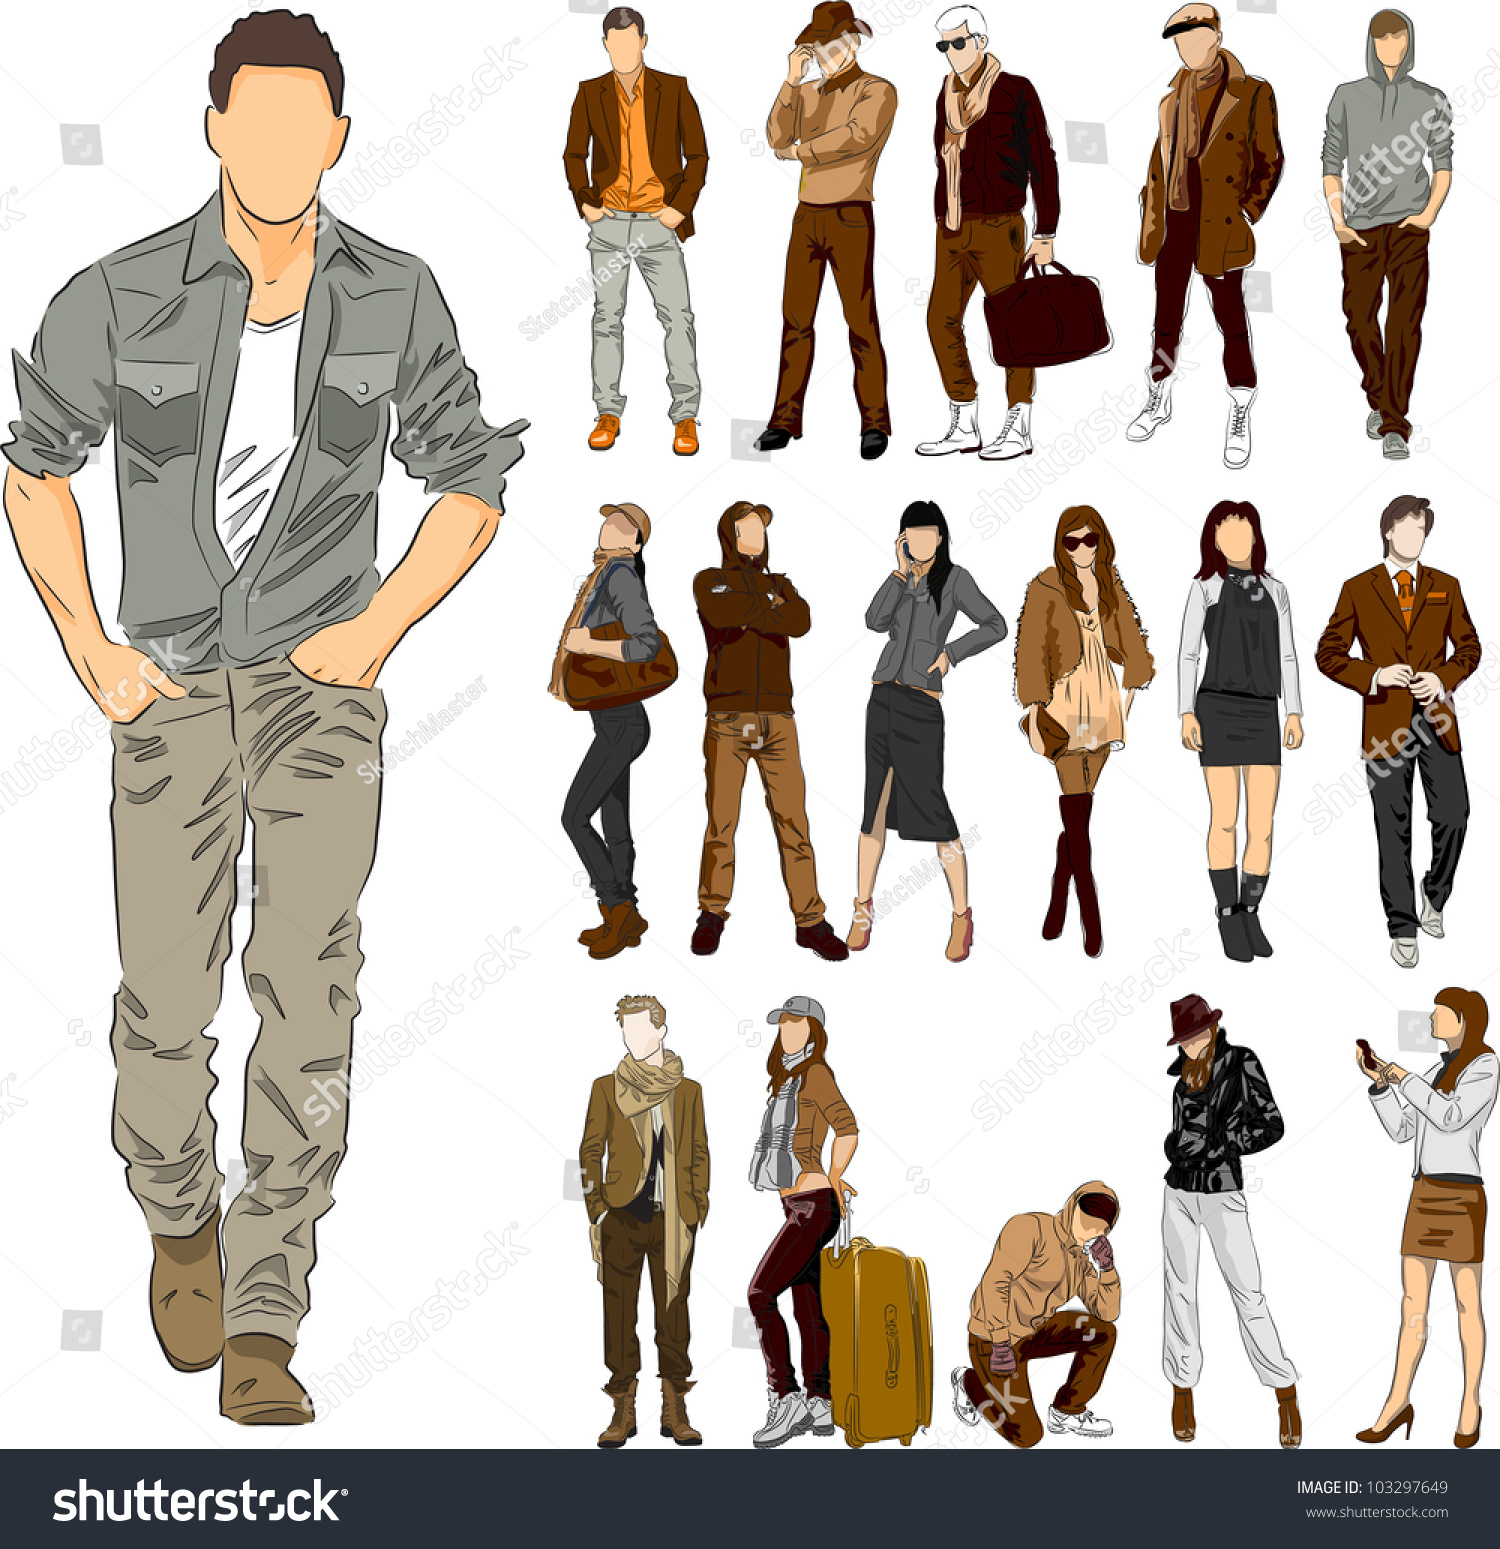 Men Fashion Clipart | www.imgkid.com - The Image Kid Has It!